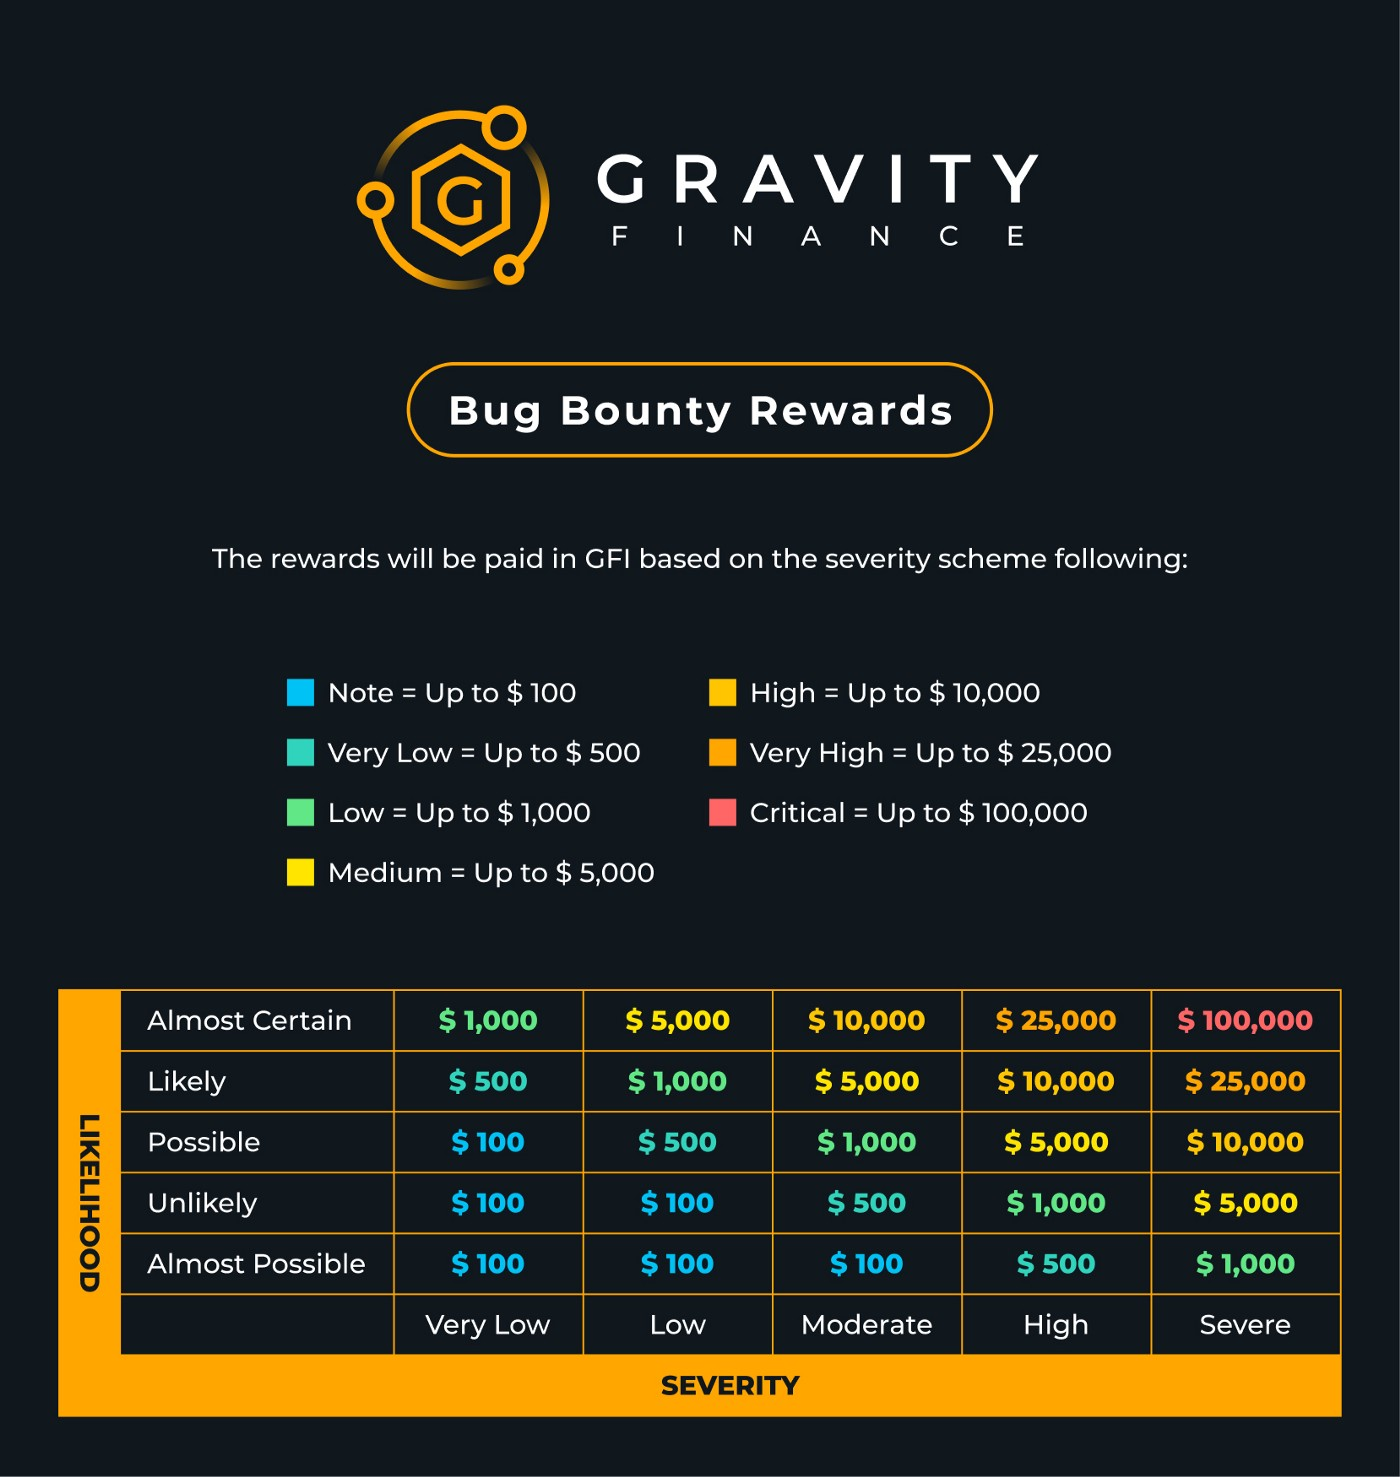 Bug Bounty Rewards ranging from $10 to $100,000 based on severity. Bounties paid in GFI tokens.